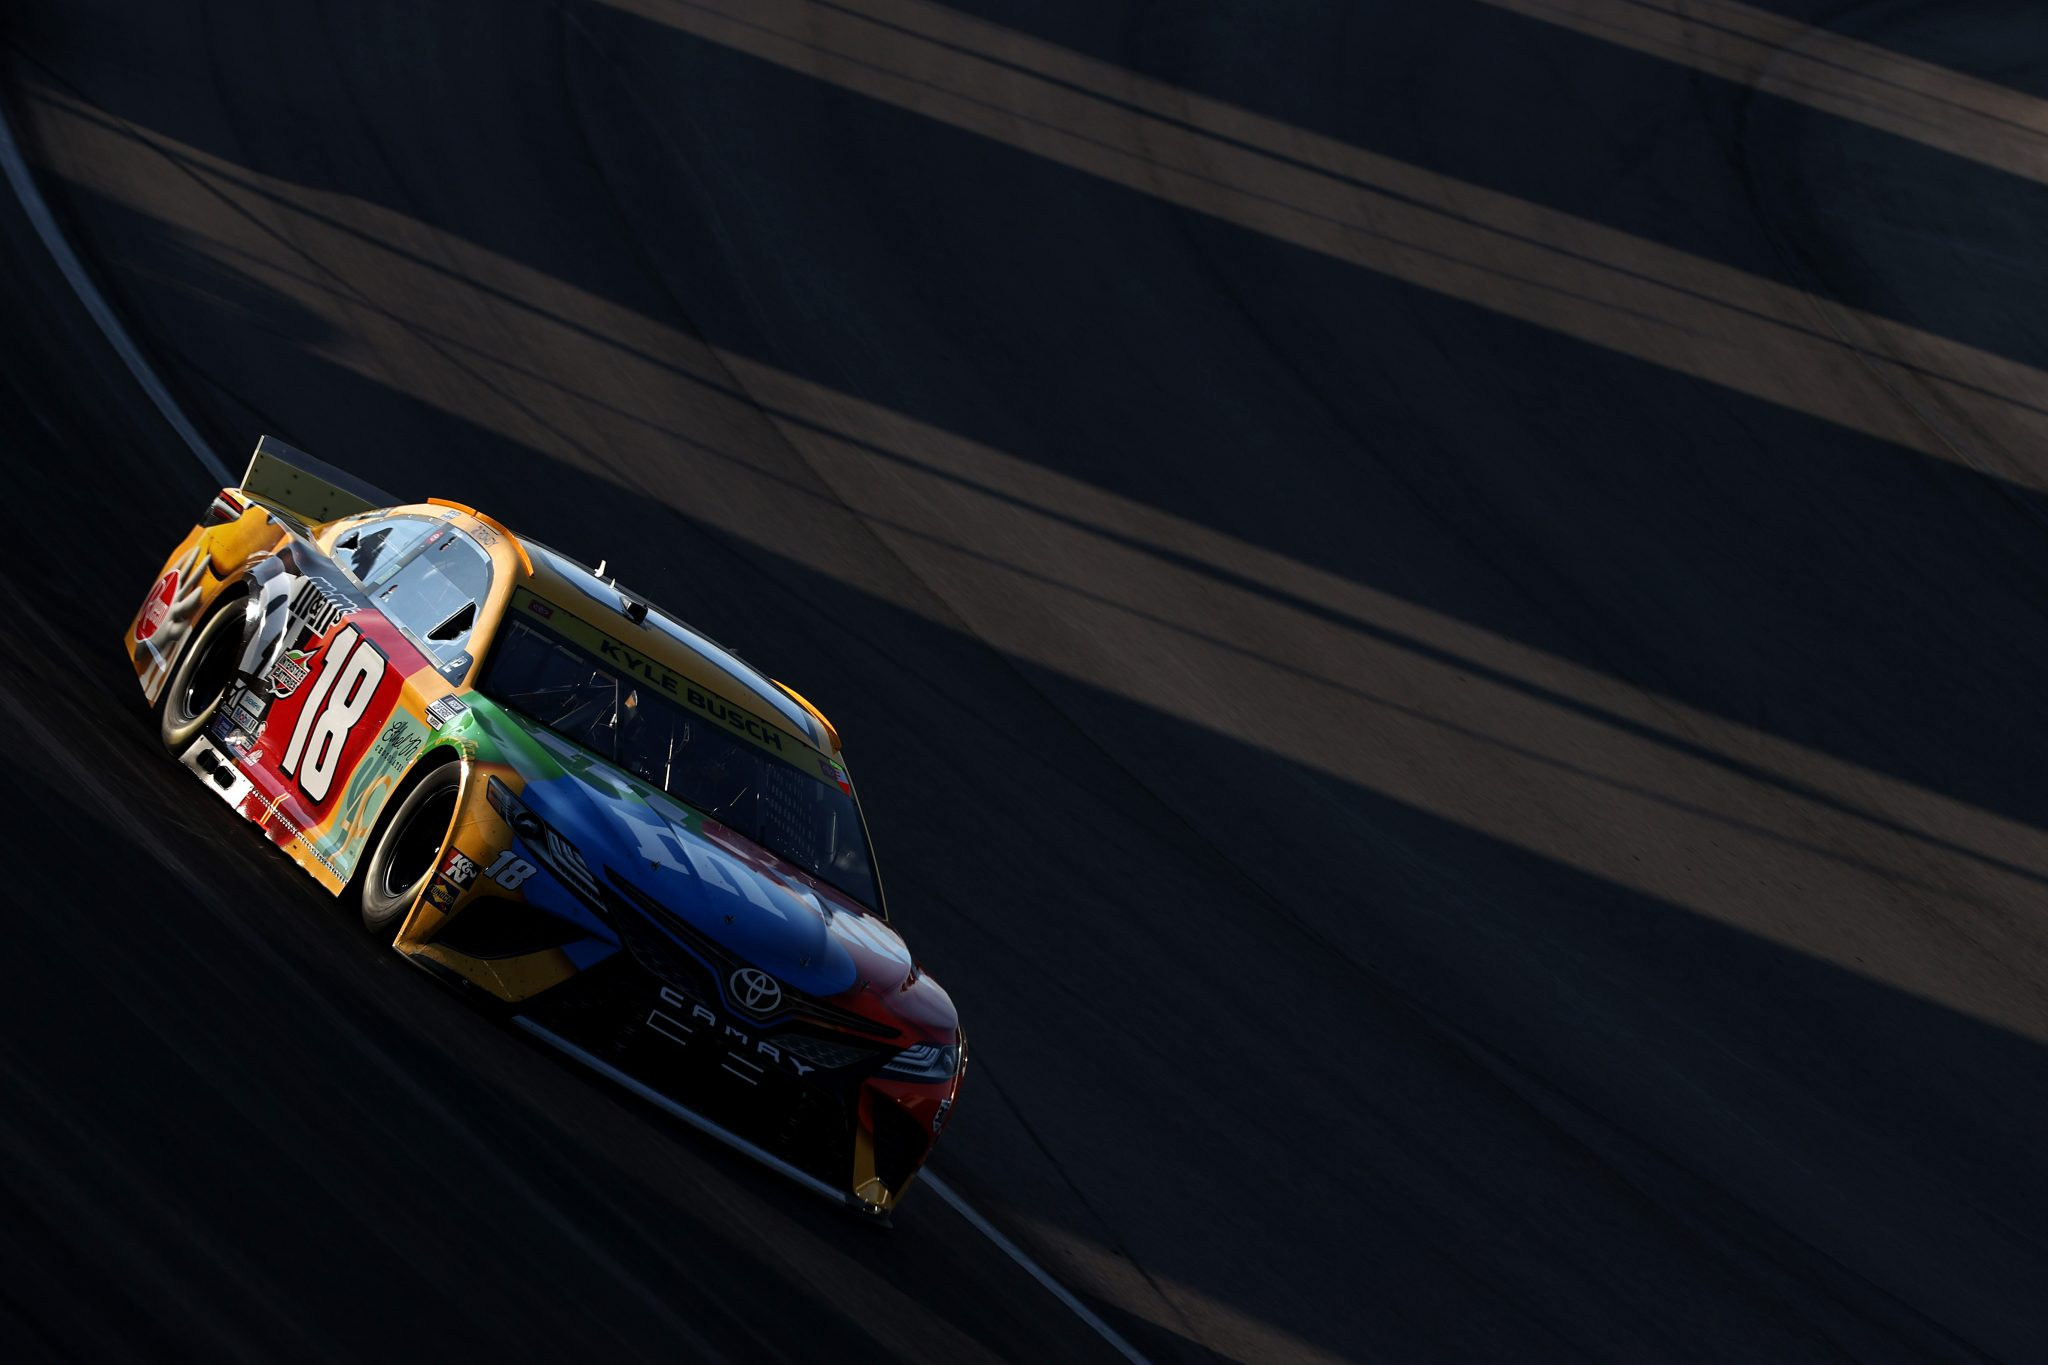 LAS VEGAS, NEVADA - SEPTEMBER 26: <>during the NASCAR Cup Series South Point 400 at Las Vegas Motor Speedway on September 26, 2021 in Las Vegas, Nevada. (Photo by Meg Oliphant/Getty Images) | Getty Images